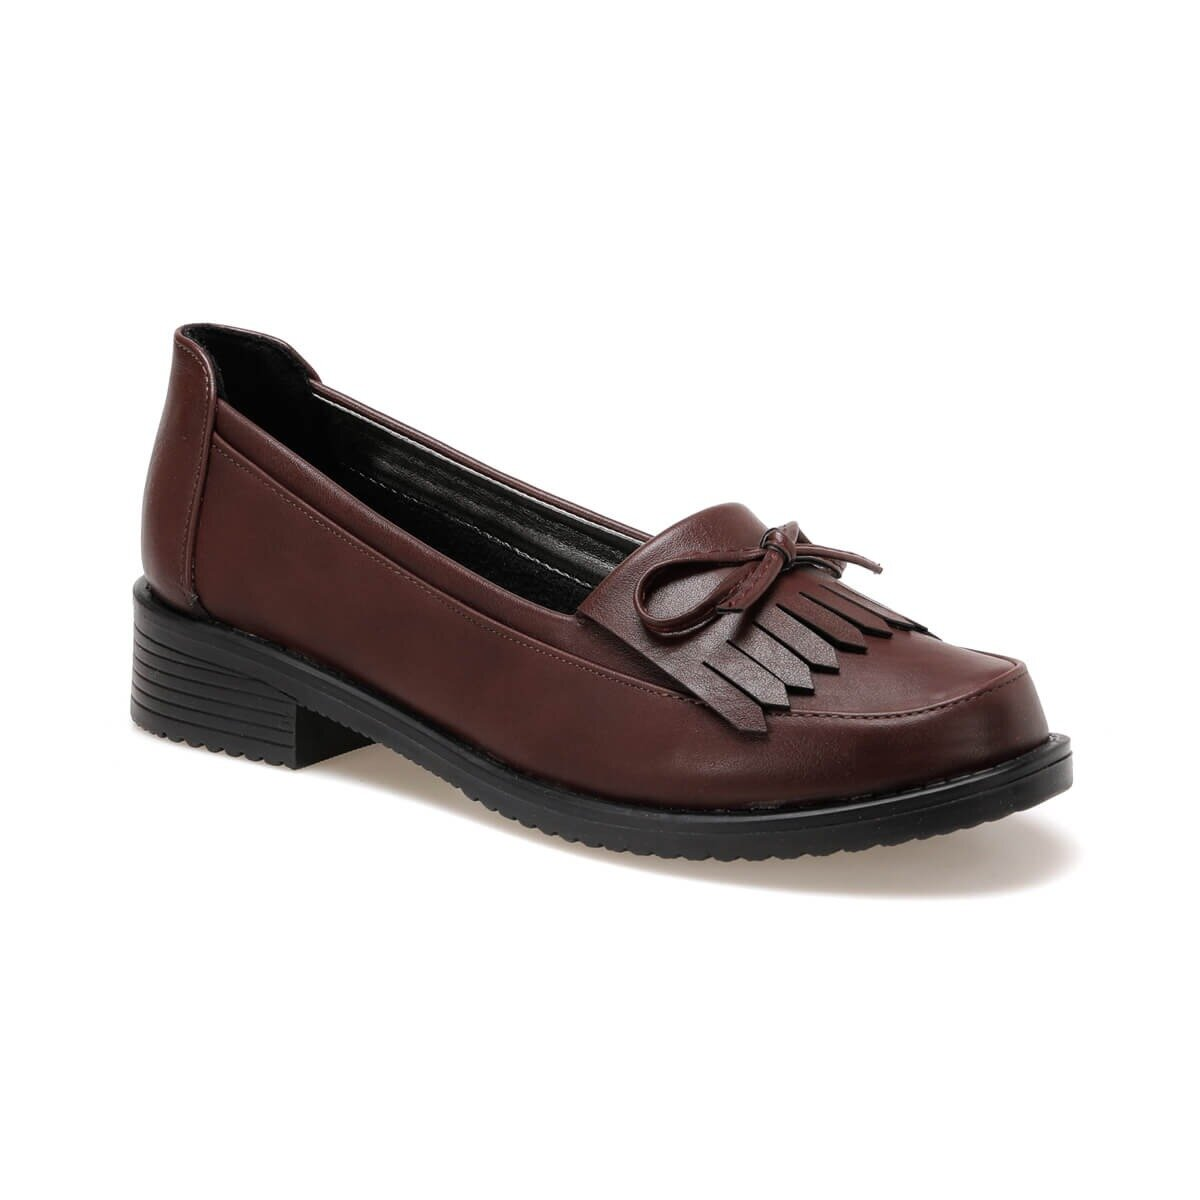 FLO 92.151055.Z Burgundy Women Loafer Shoes Polaris